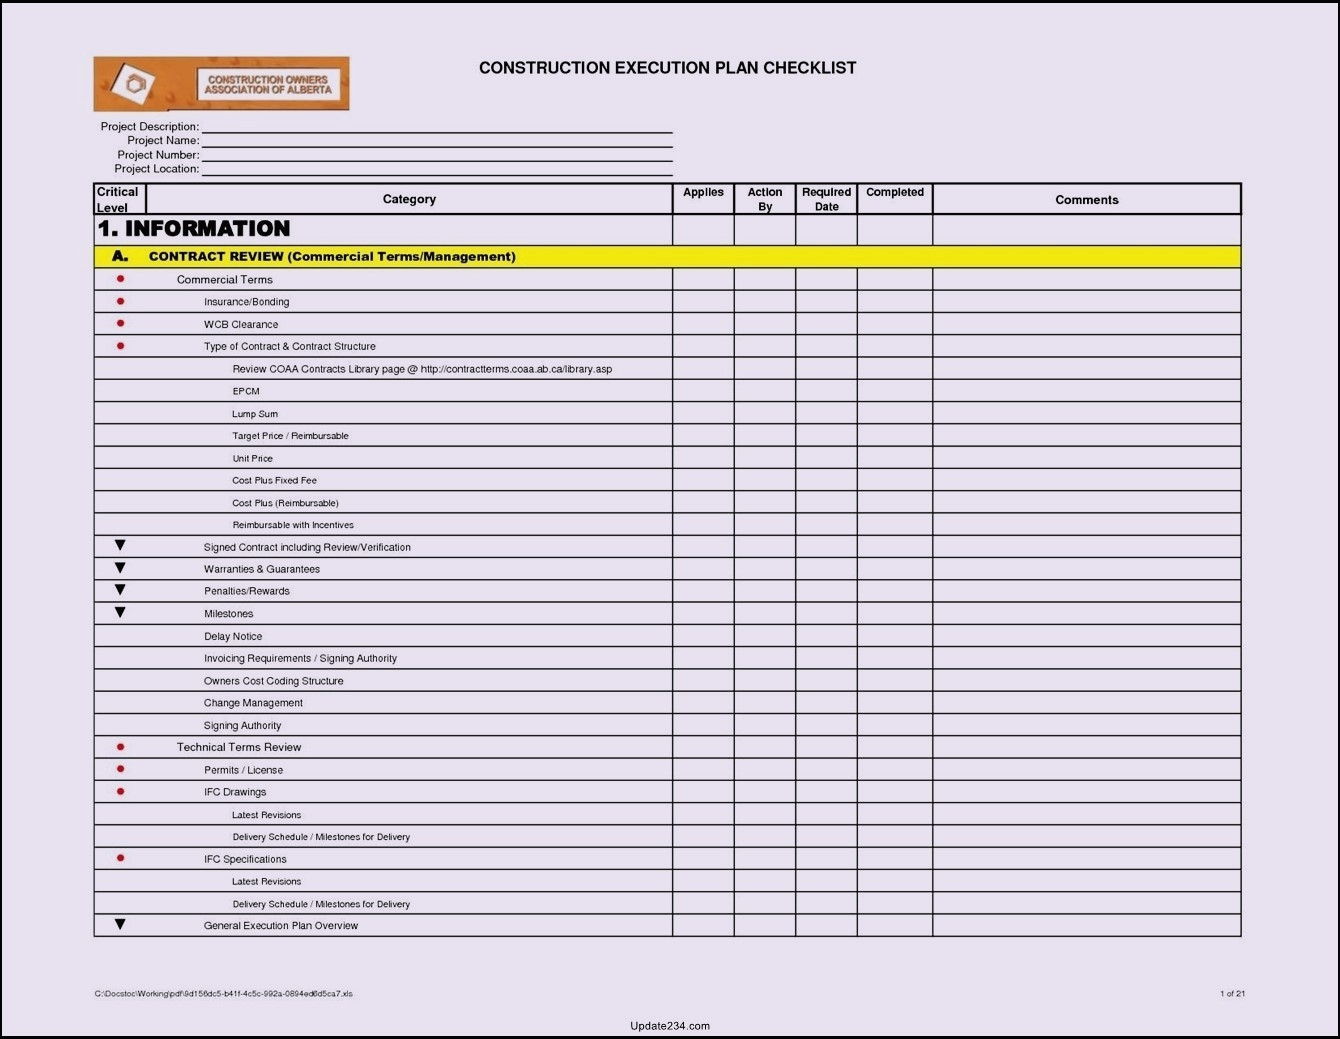 Project Checklist Template Excel Template Update234